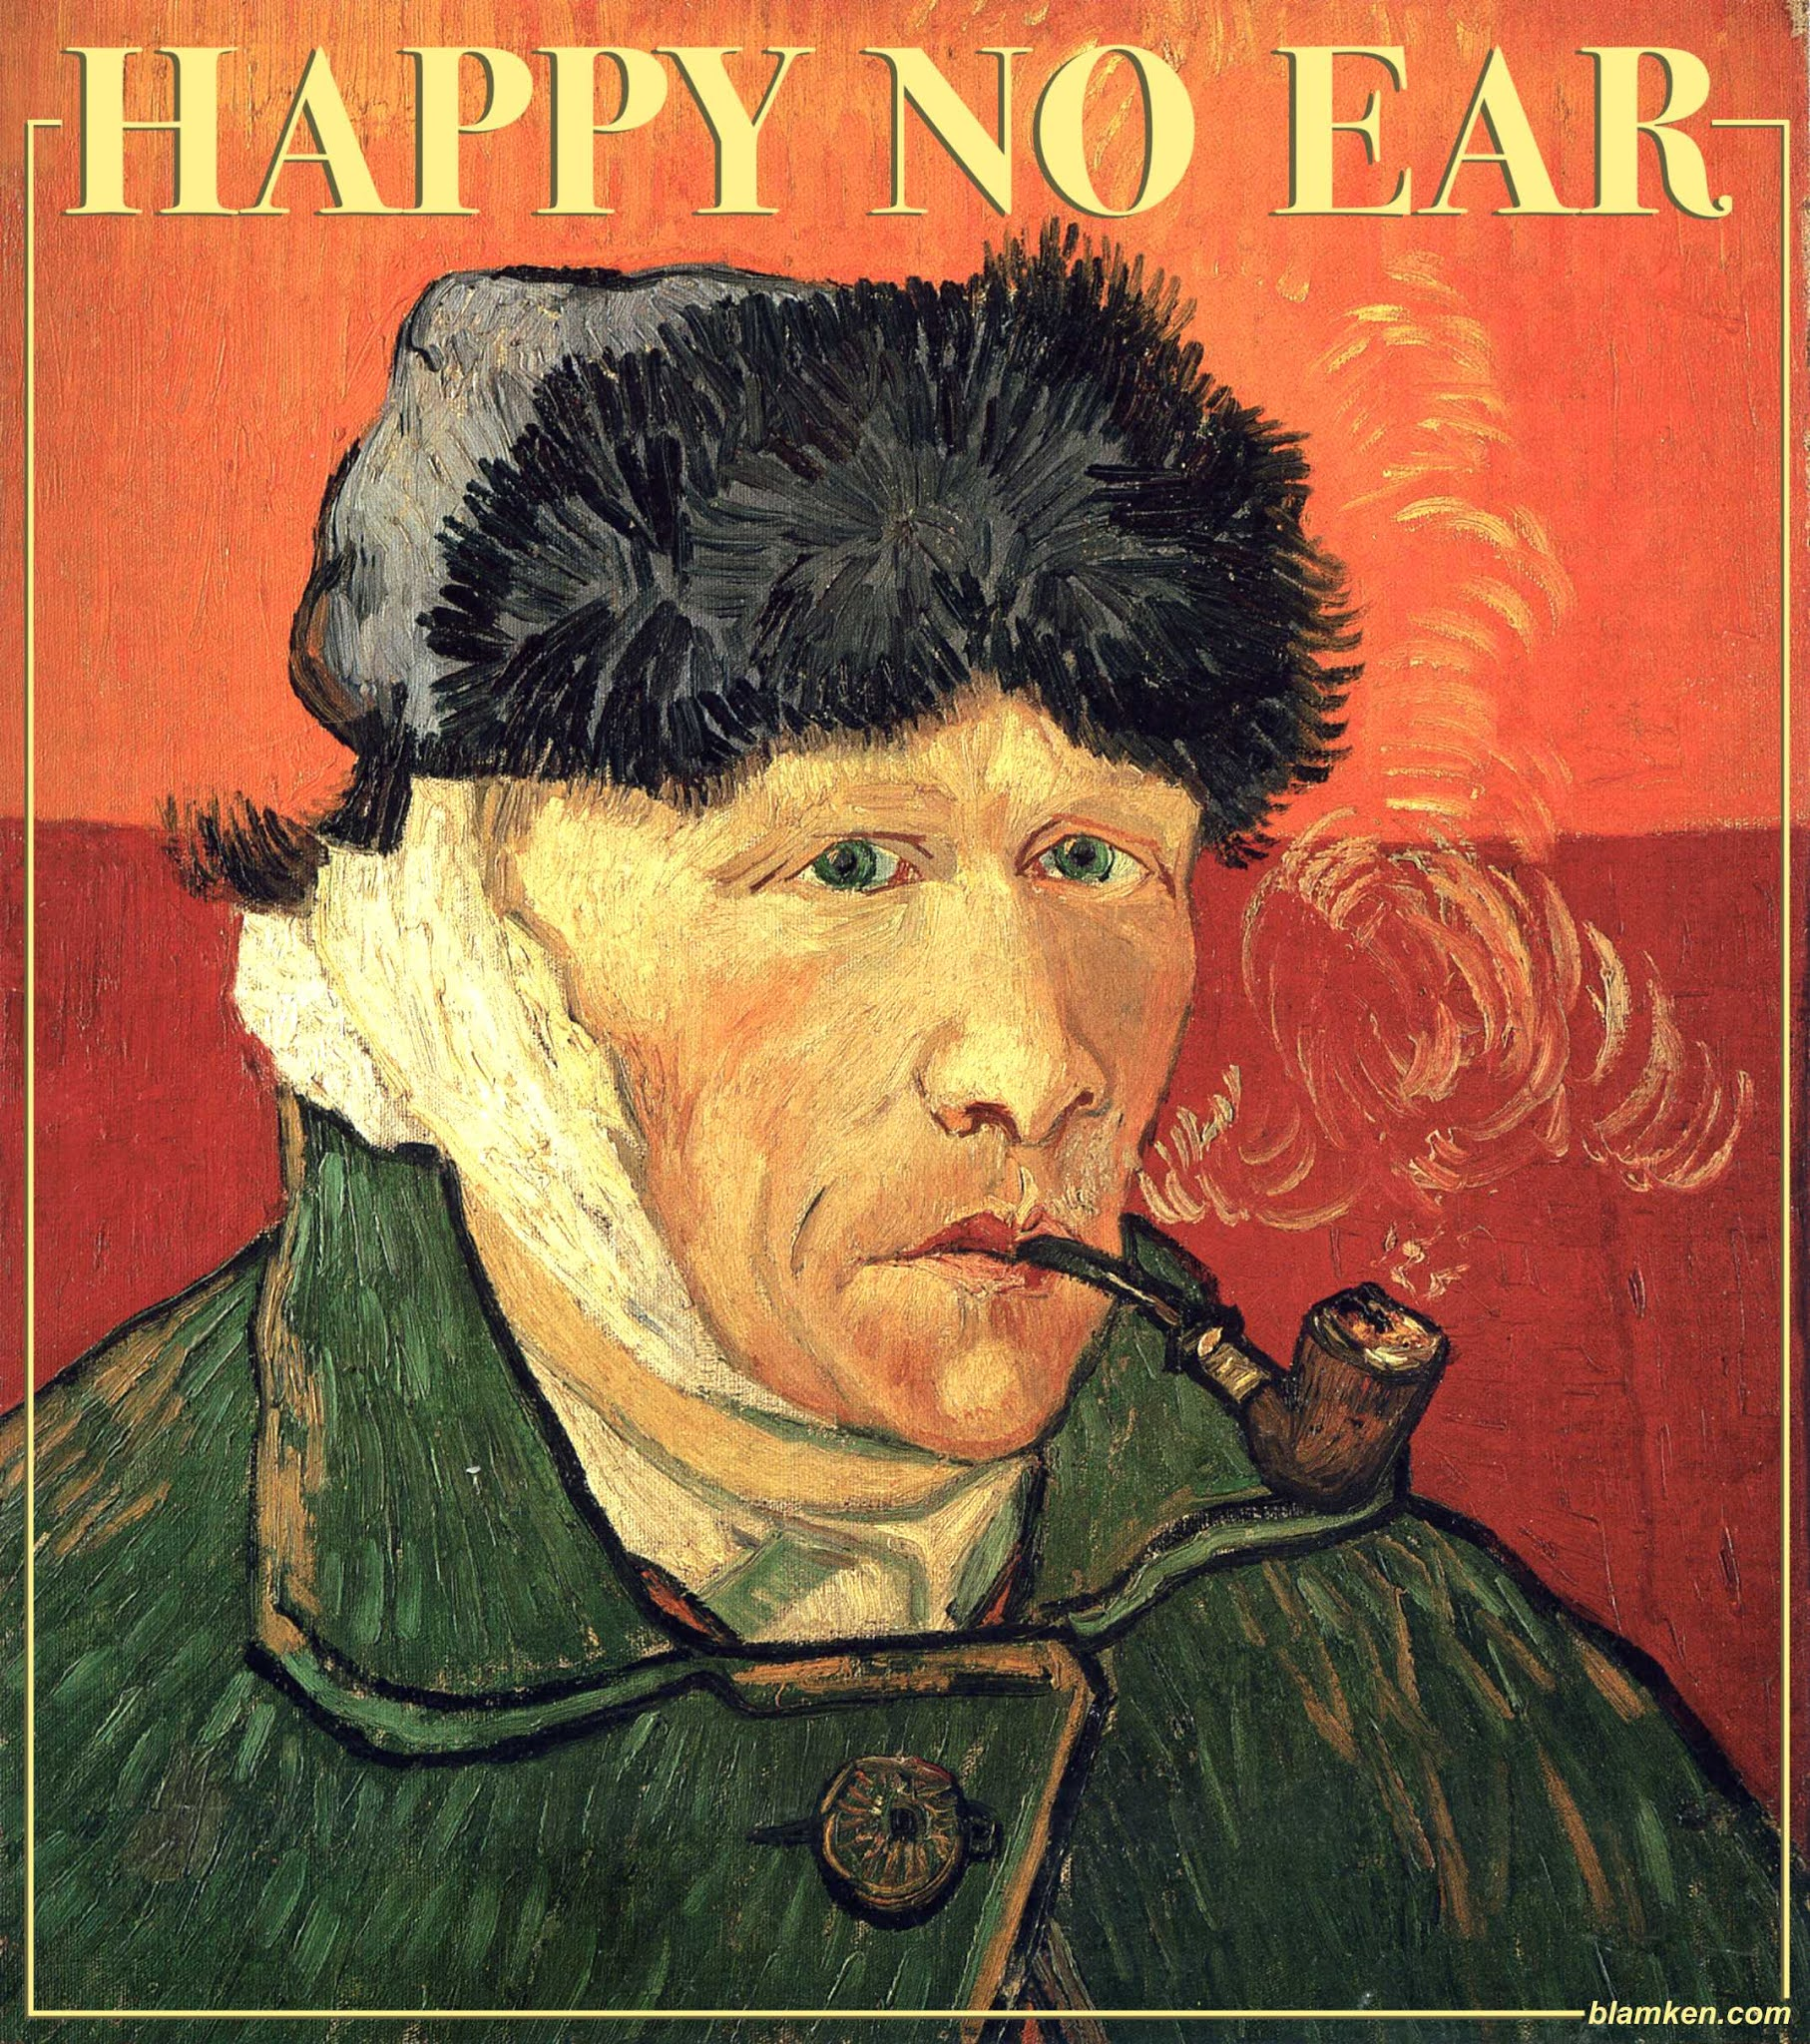 famed self-portrait of Vincent van Gogh in green coat and fur hat, smoking a pipe, with right side of head bandaged after self-mutilation, and stylized text reading 'Happy No Ear!'